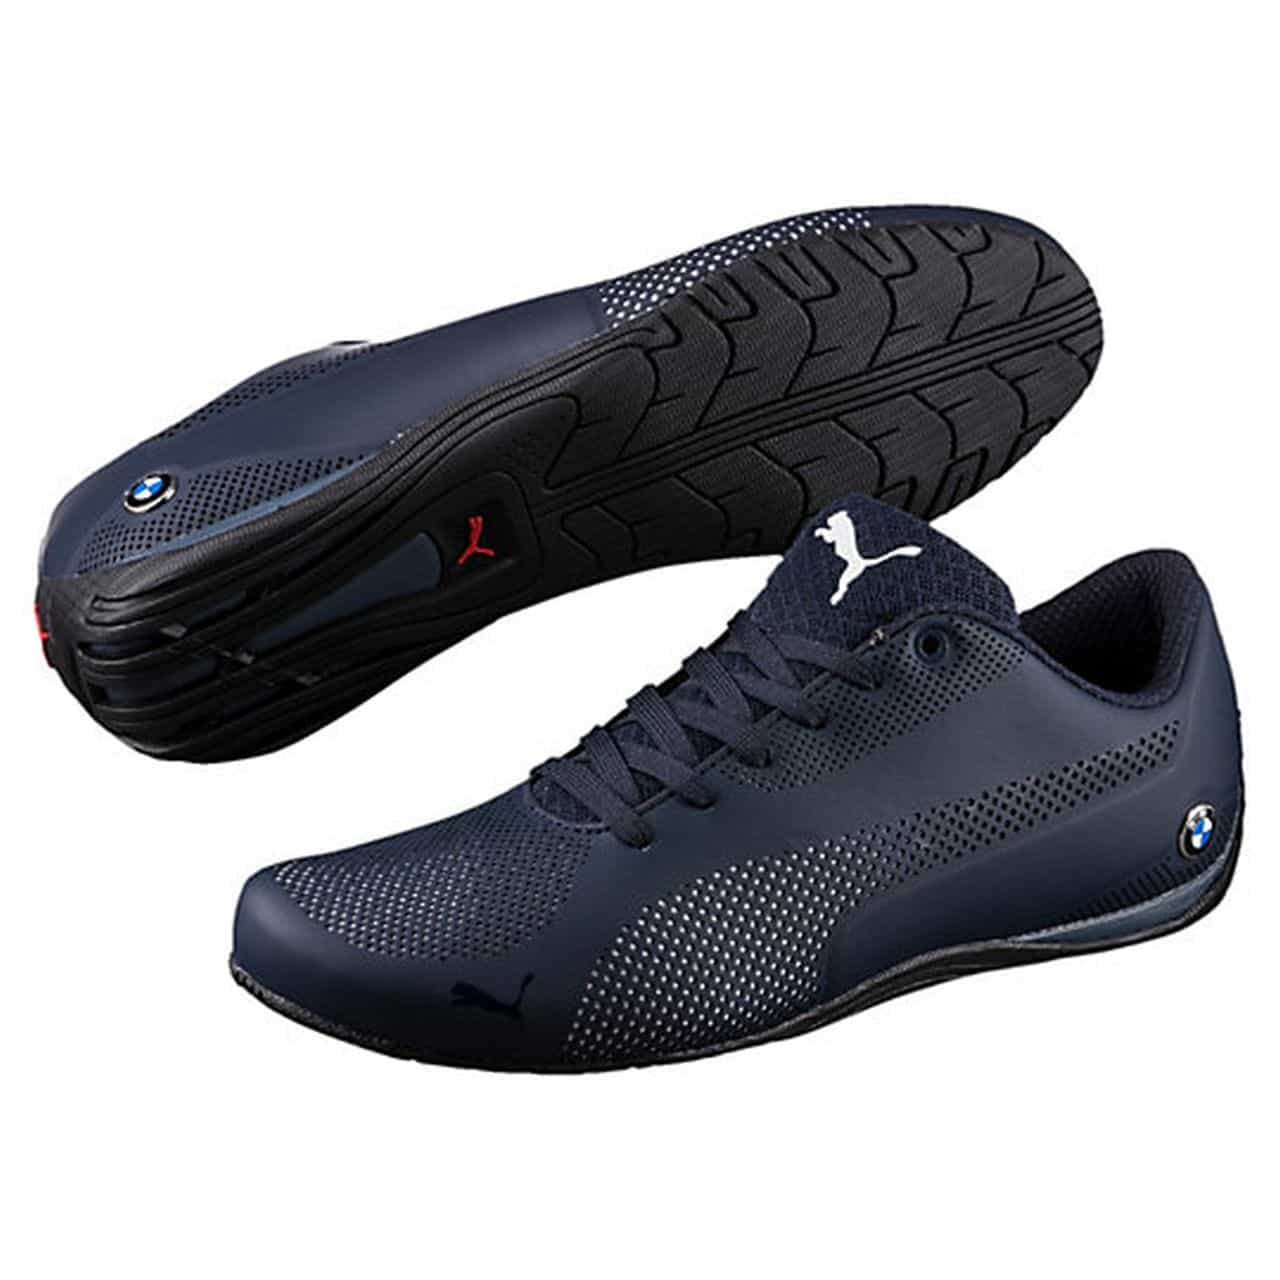 ADIDASI ORIGINALI PUMA BMW MS DRIFT CAT 5 ULTRA - 305882 01